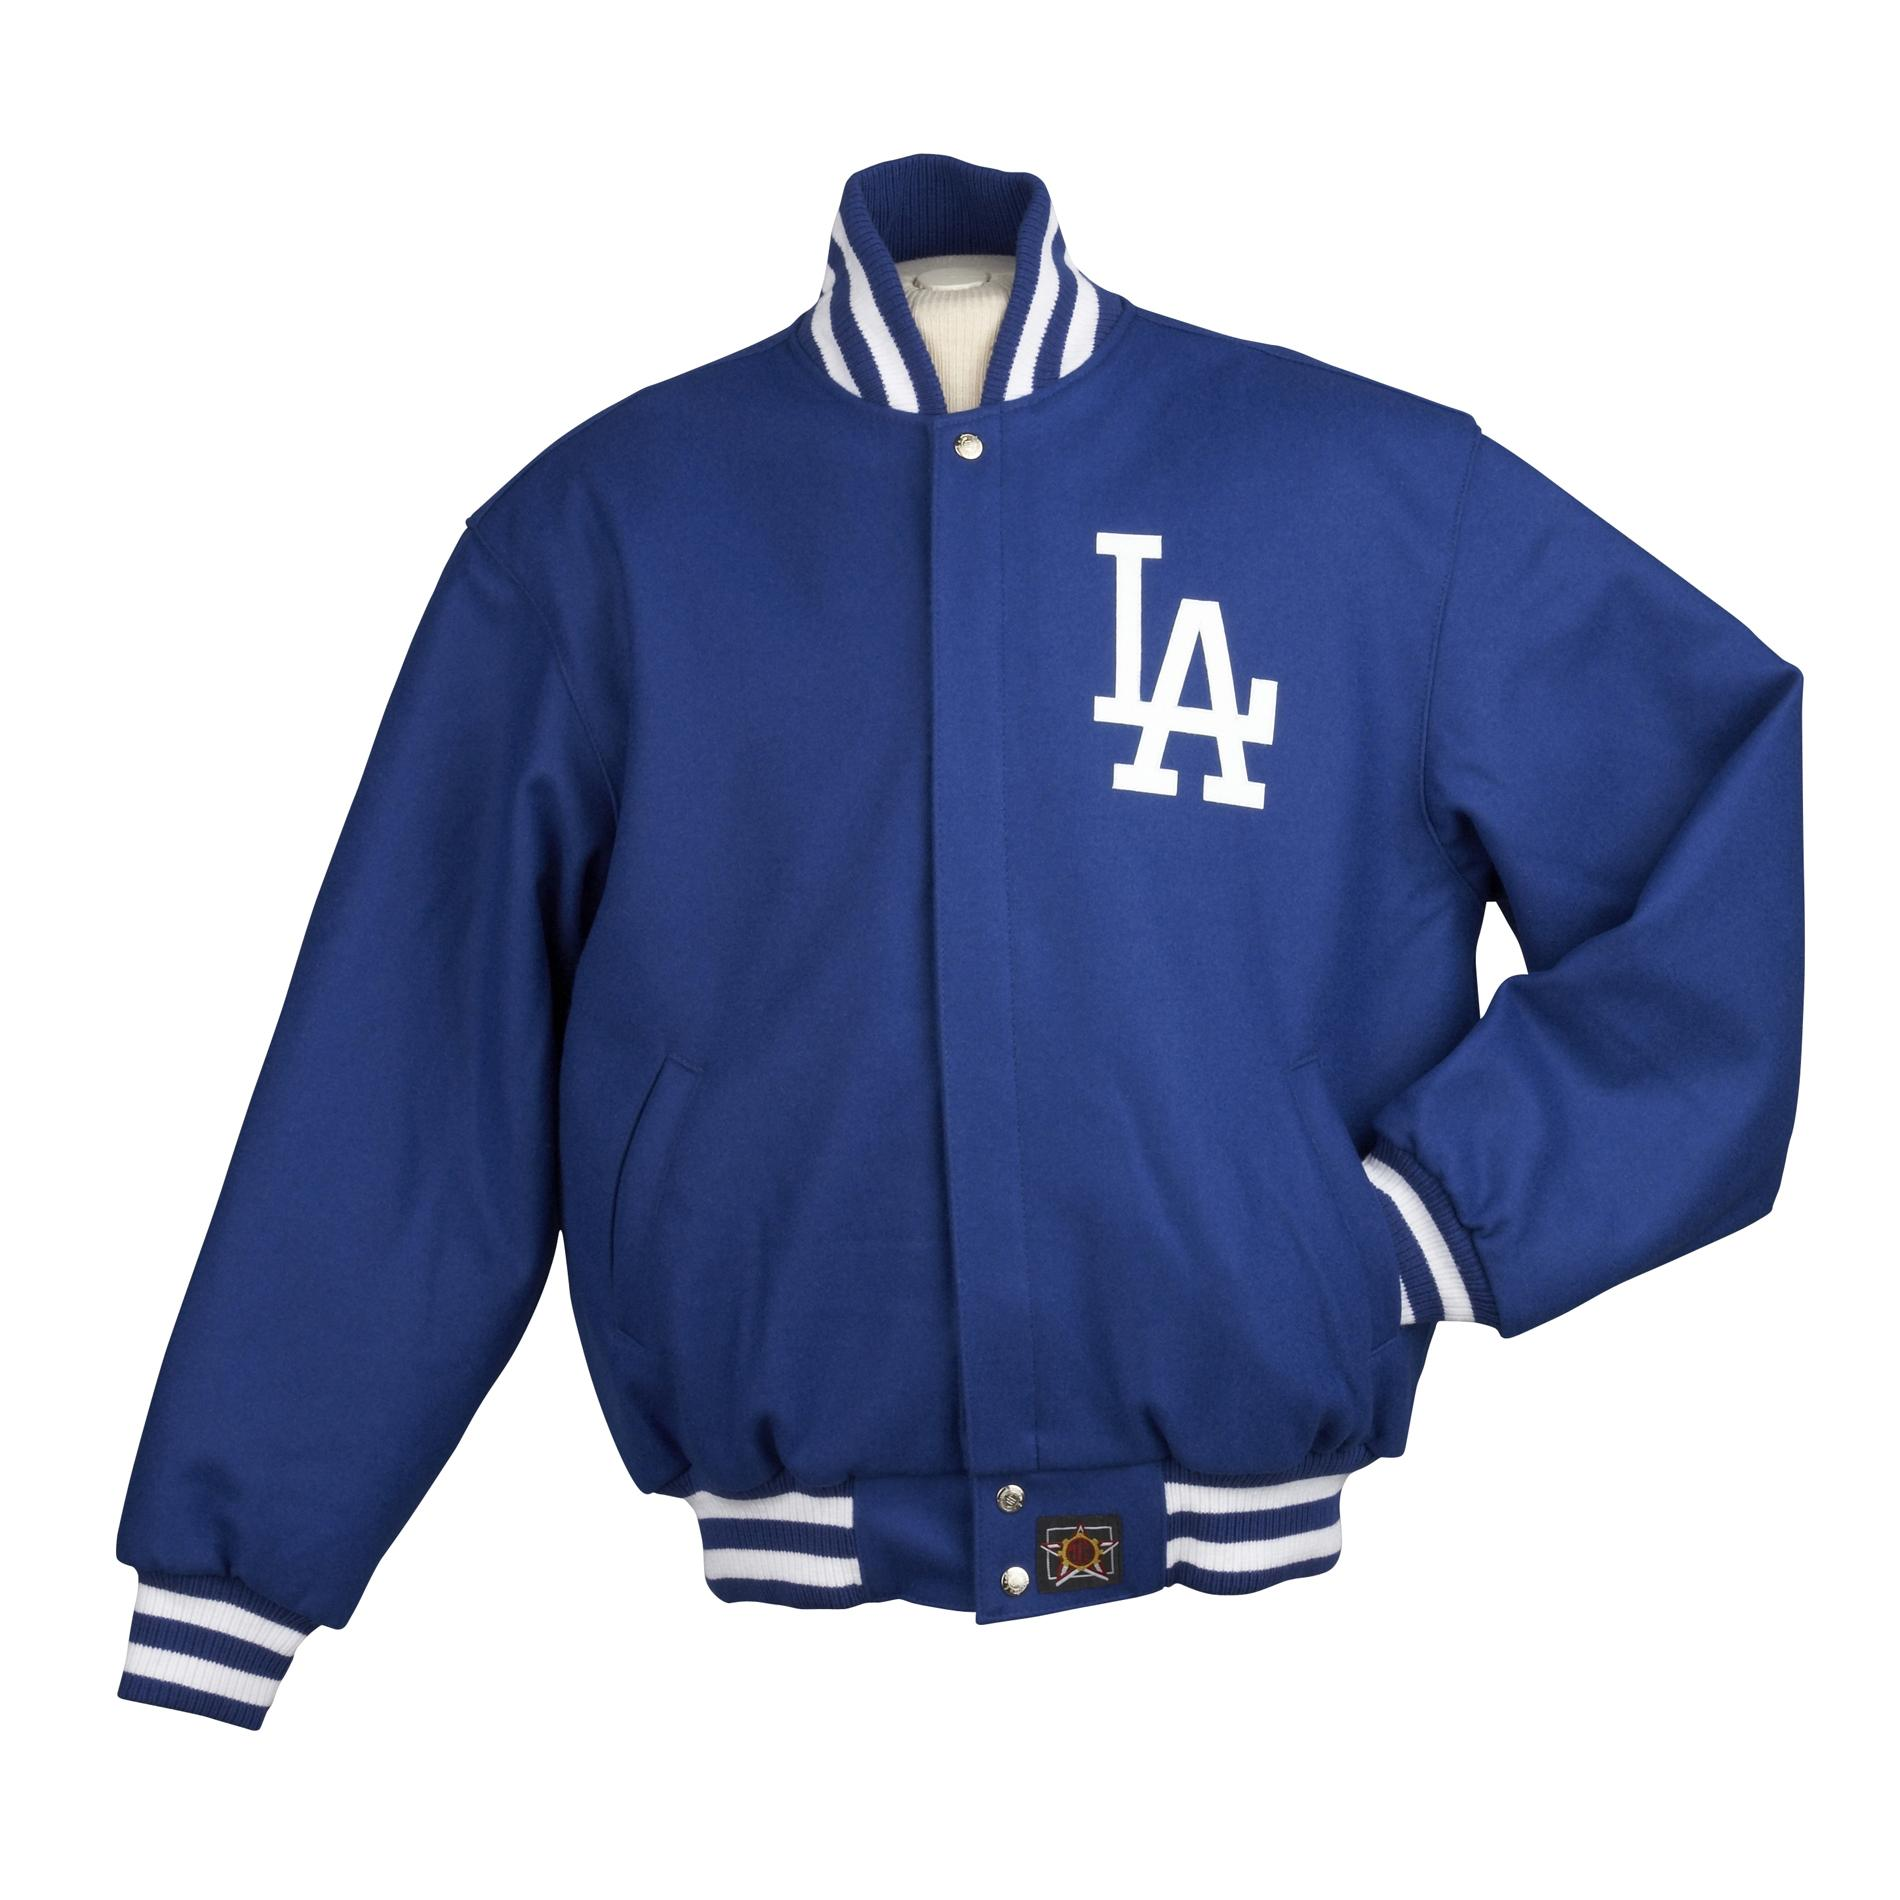 JH Designs Men's Los Angeles Dodgers Domestic Wool Jacket